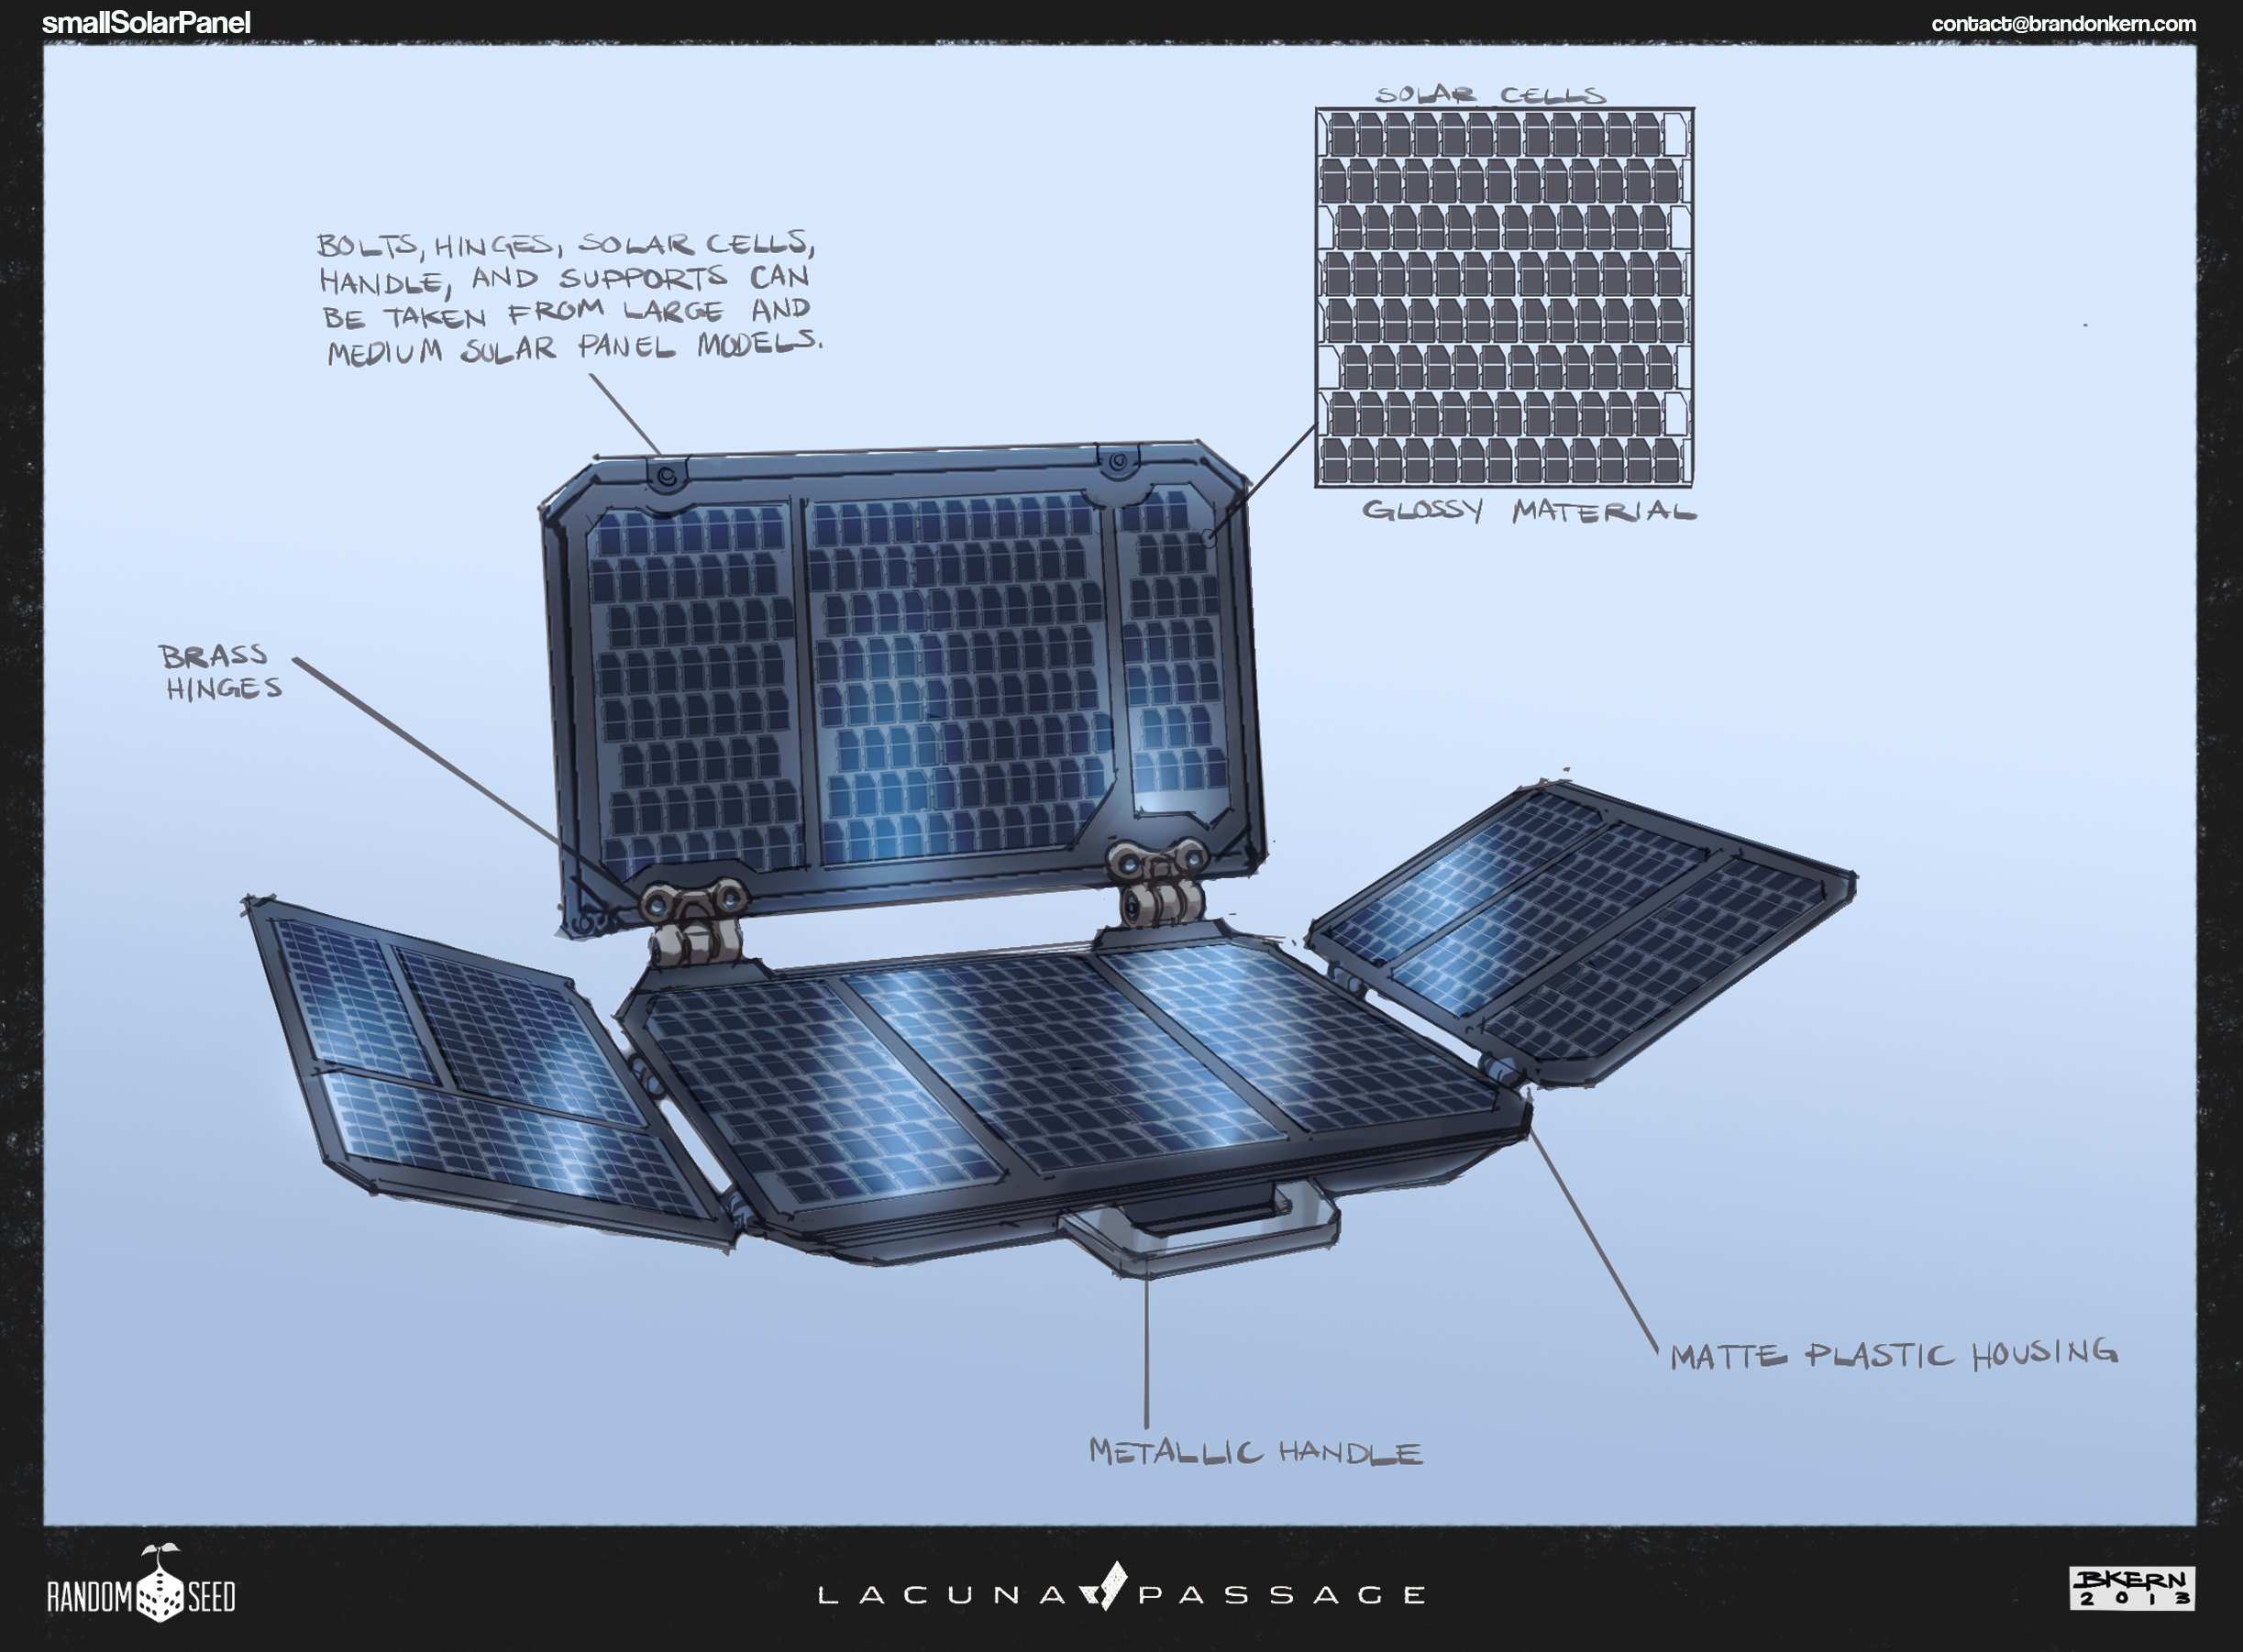 smallSolarPanel.jpg